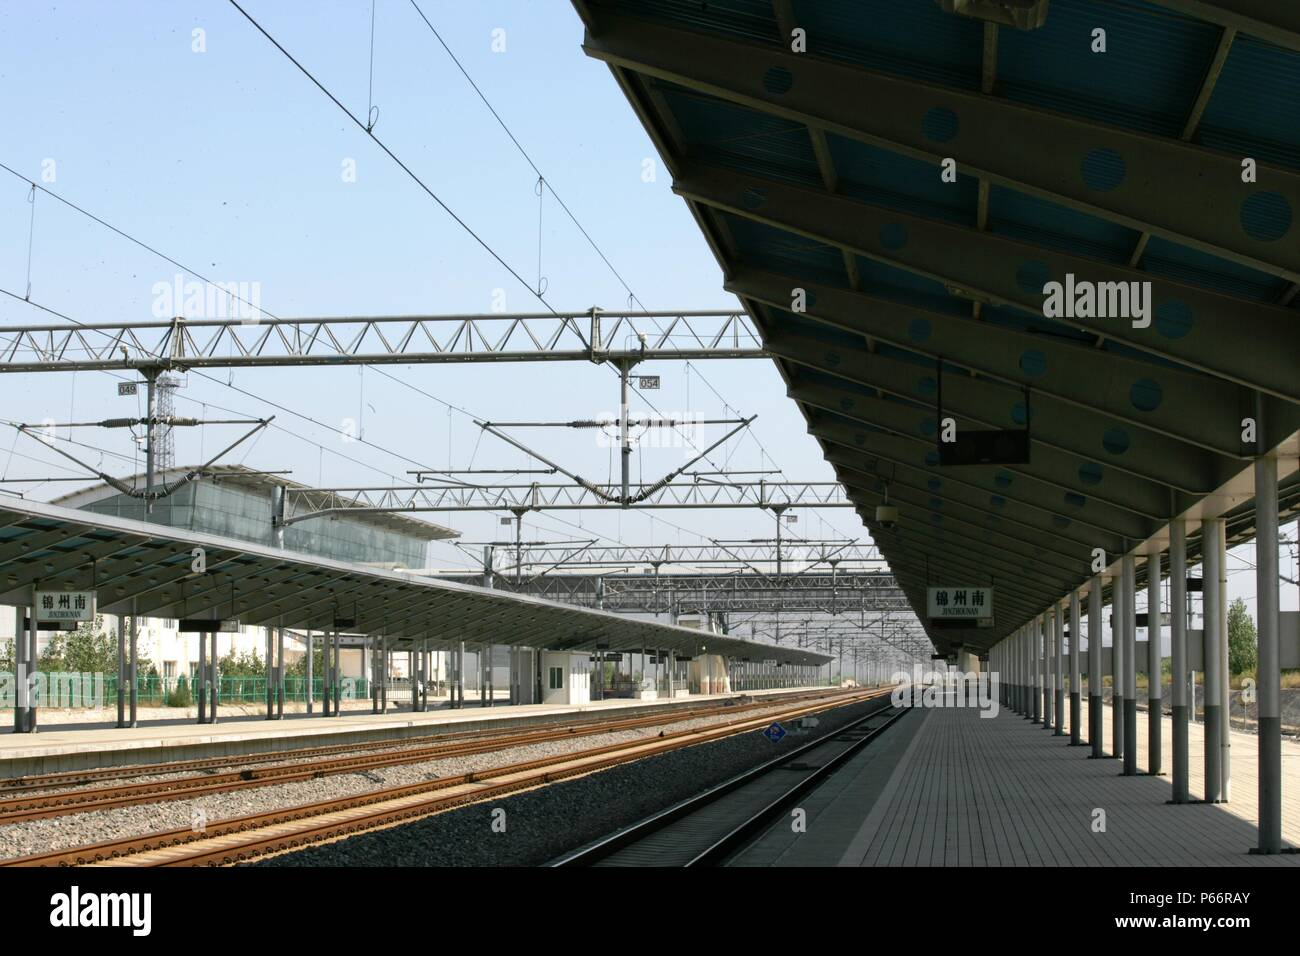 New station at Jinzhou south, China. September 2005. - Stock Image